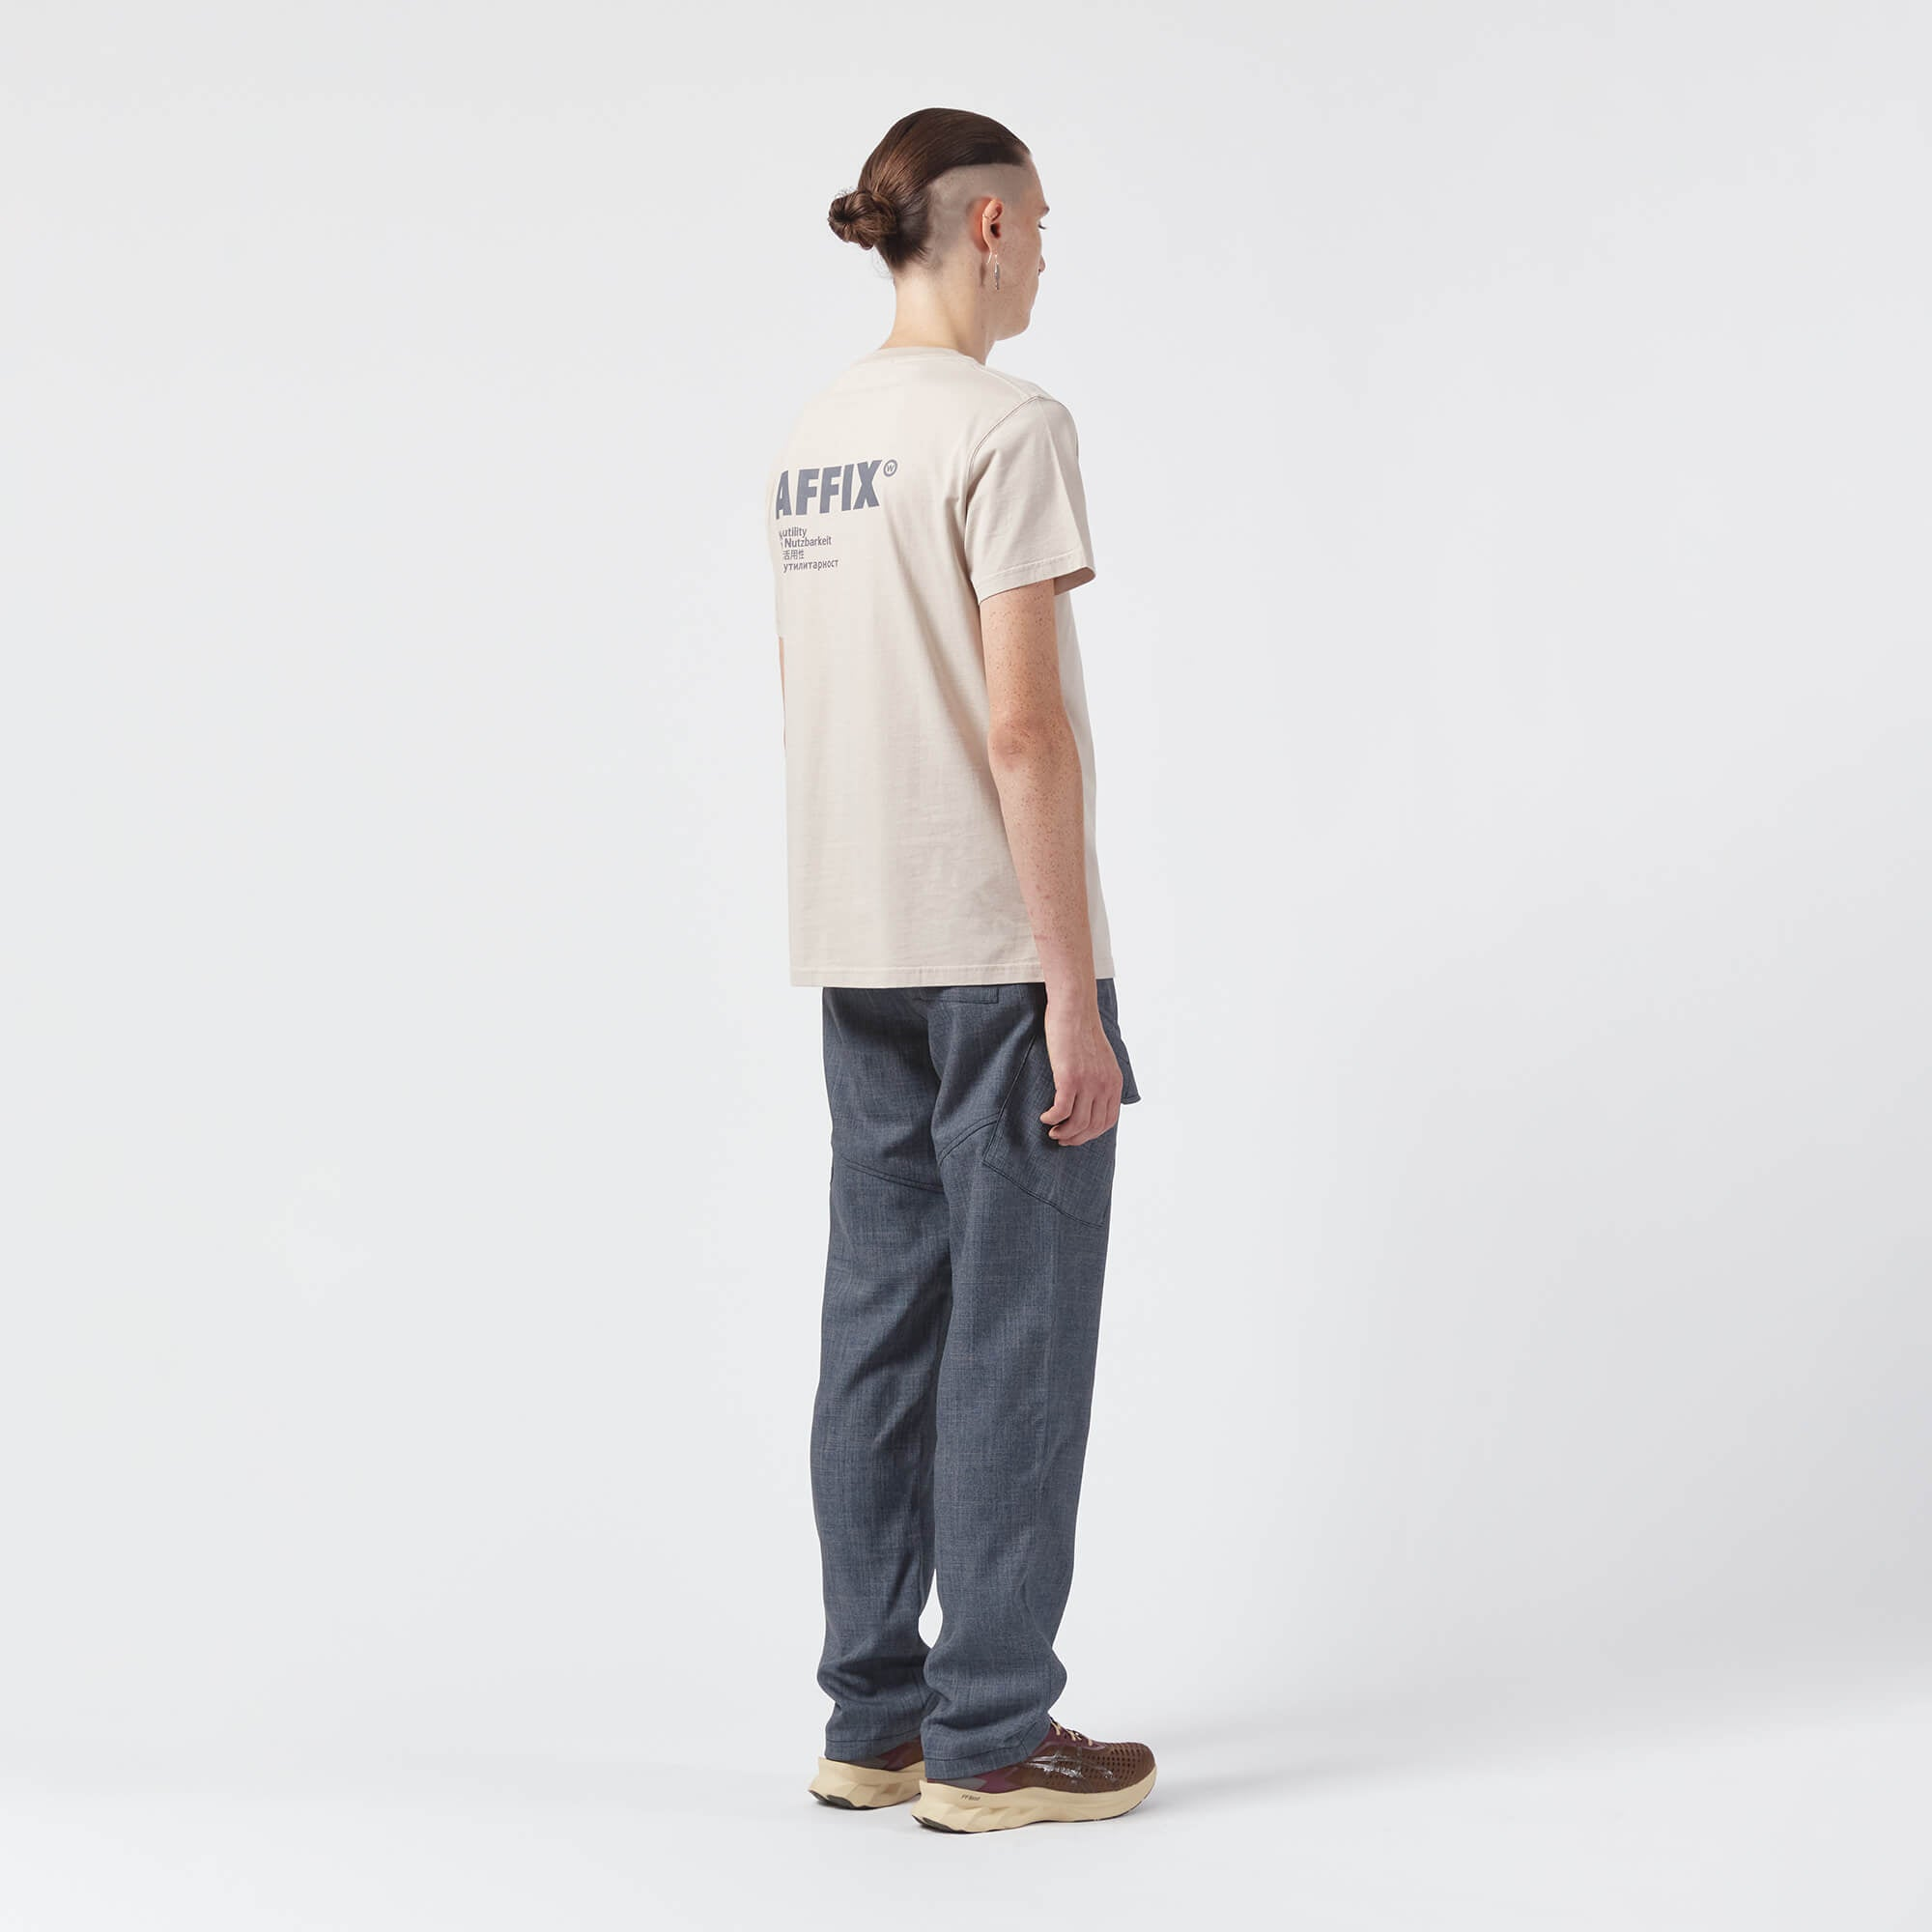 AFFIX WORKS AFFXWRKS STANDARDISED LOGO T-SHIRT TAUPE